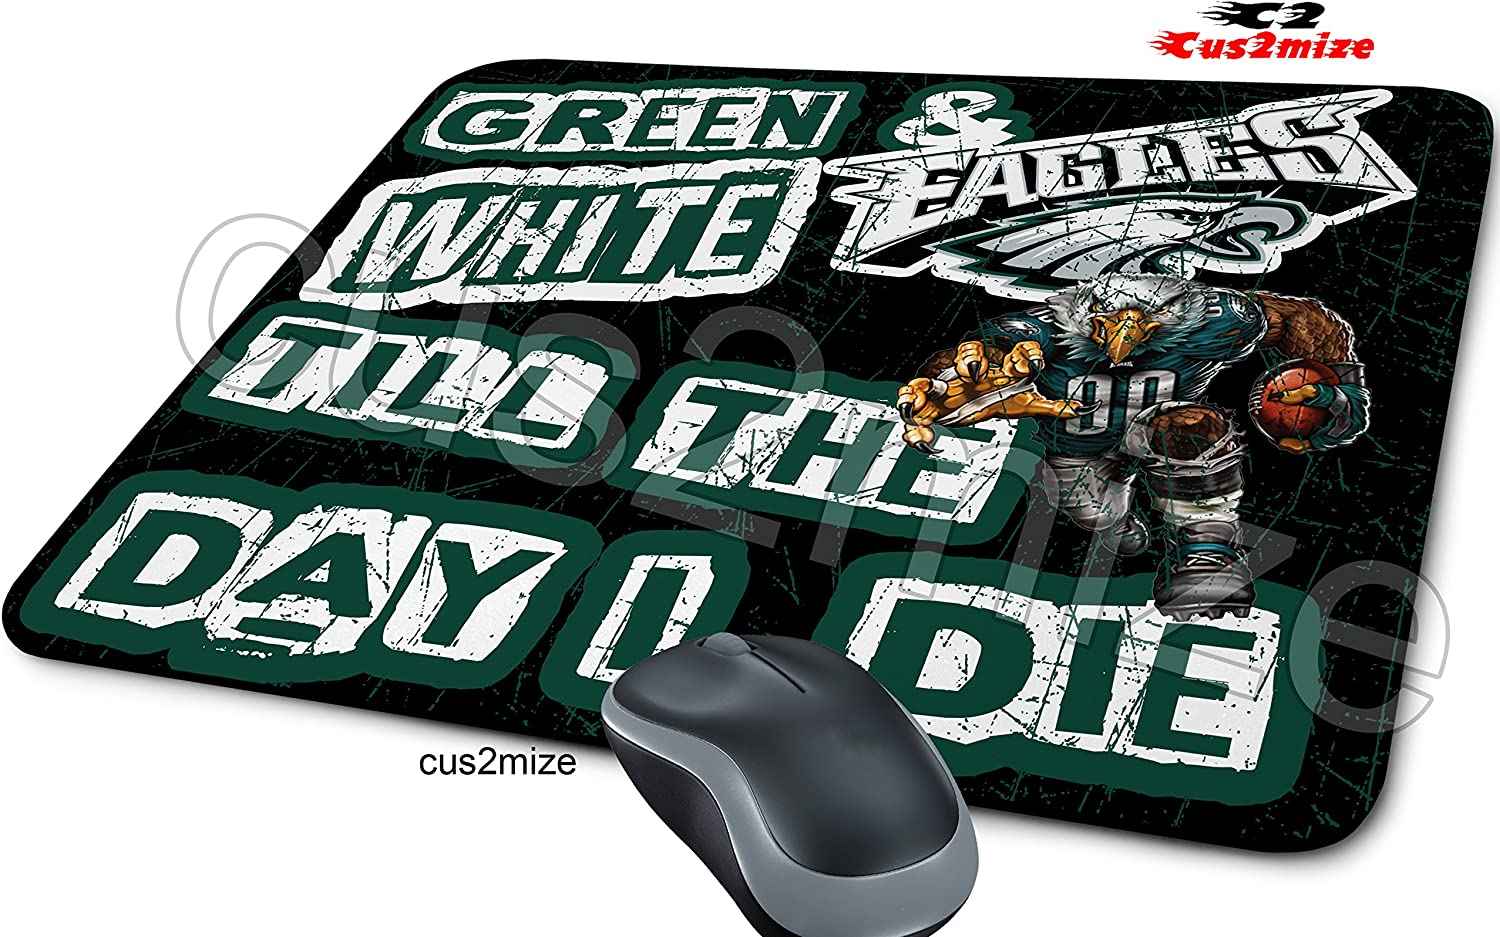 Sold By Cus2mize 0723736674764 Philadelphia Eagles Mouse Pad Philadelphia Eagles Mousepad